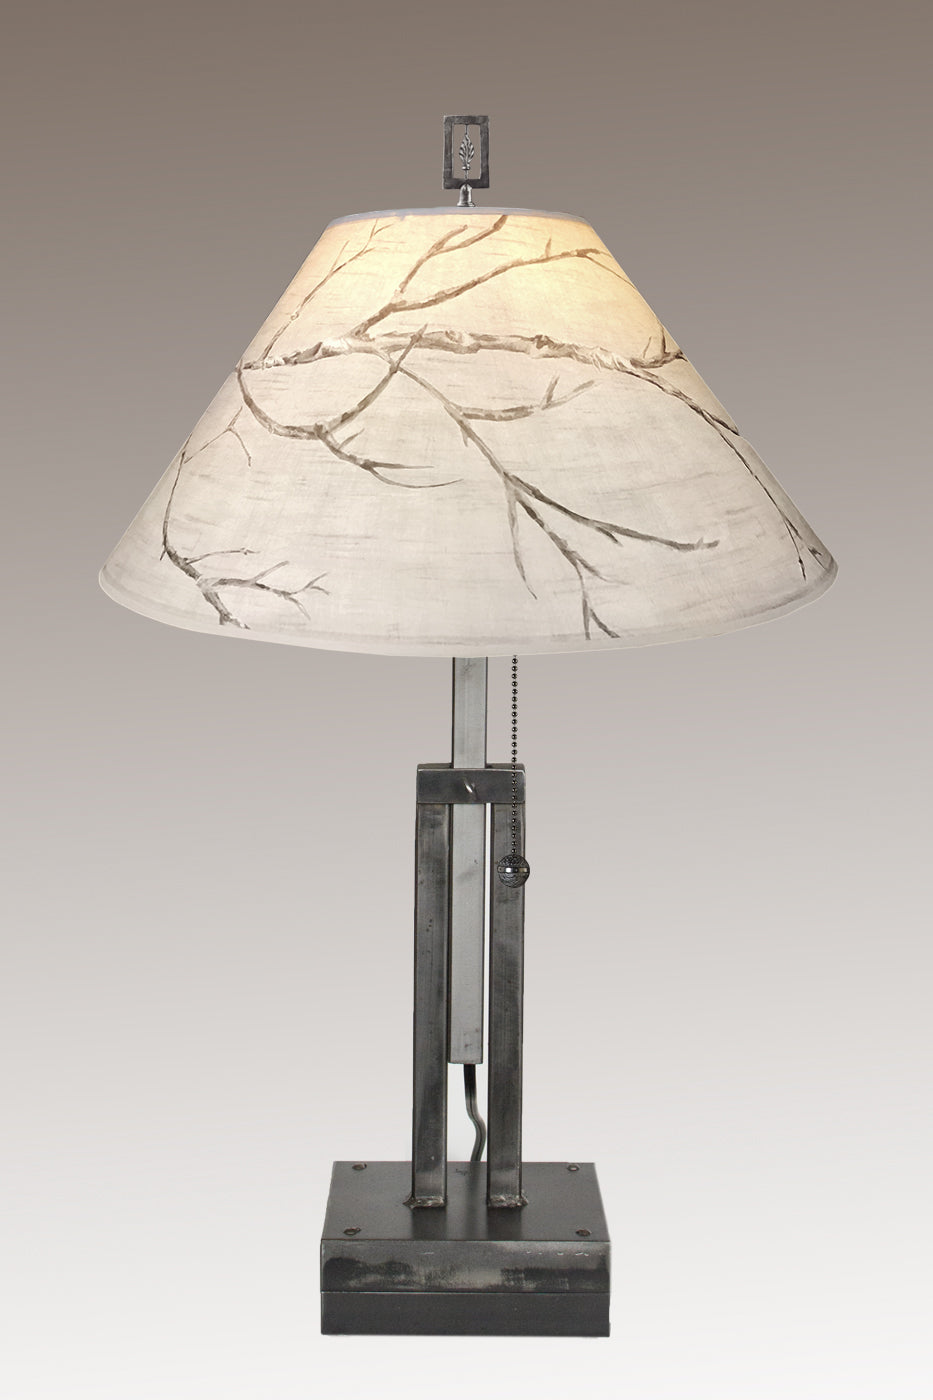 Adjustable-Height Steel Table Lamp with Large Conical Shade in Sweeping Branch